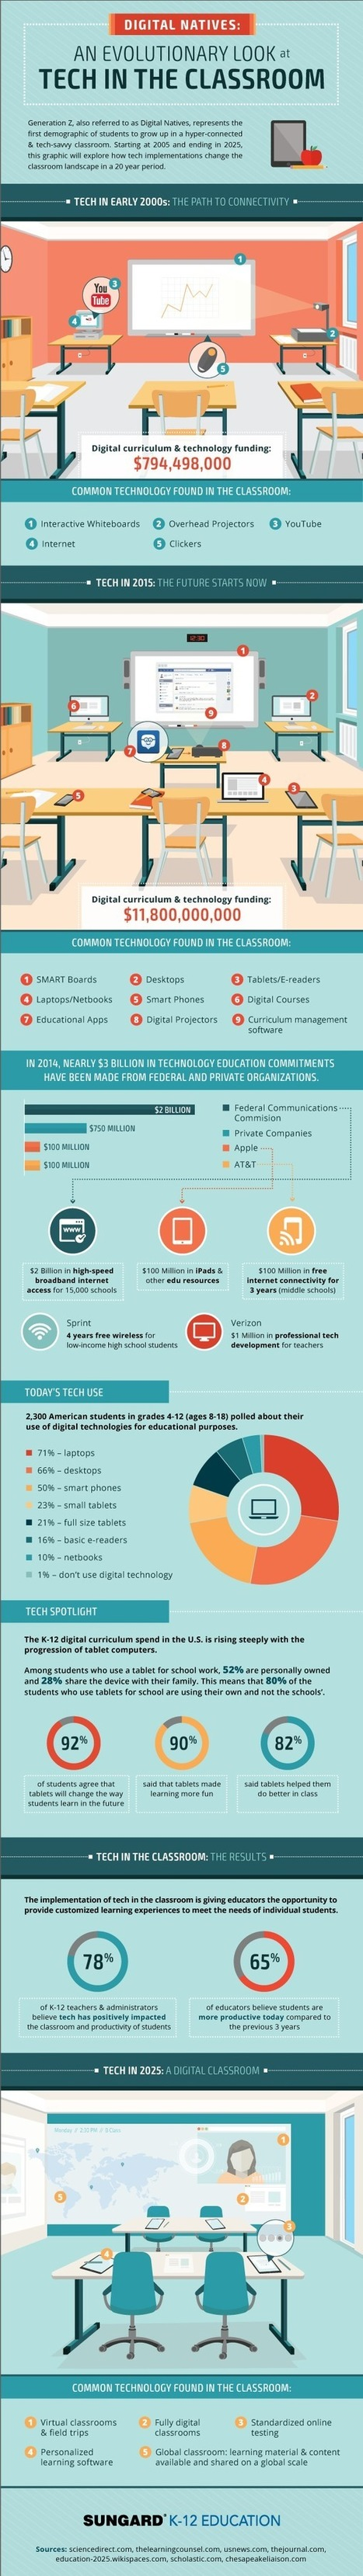 [Infographic] How classroom tech evolves | educacion-y-ntic | Scoop.it